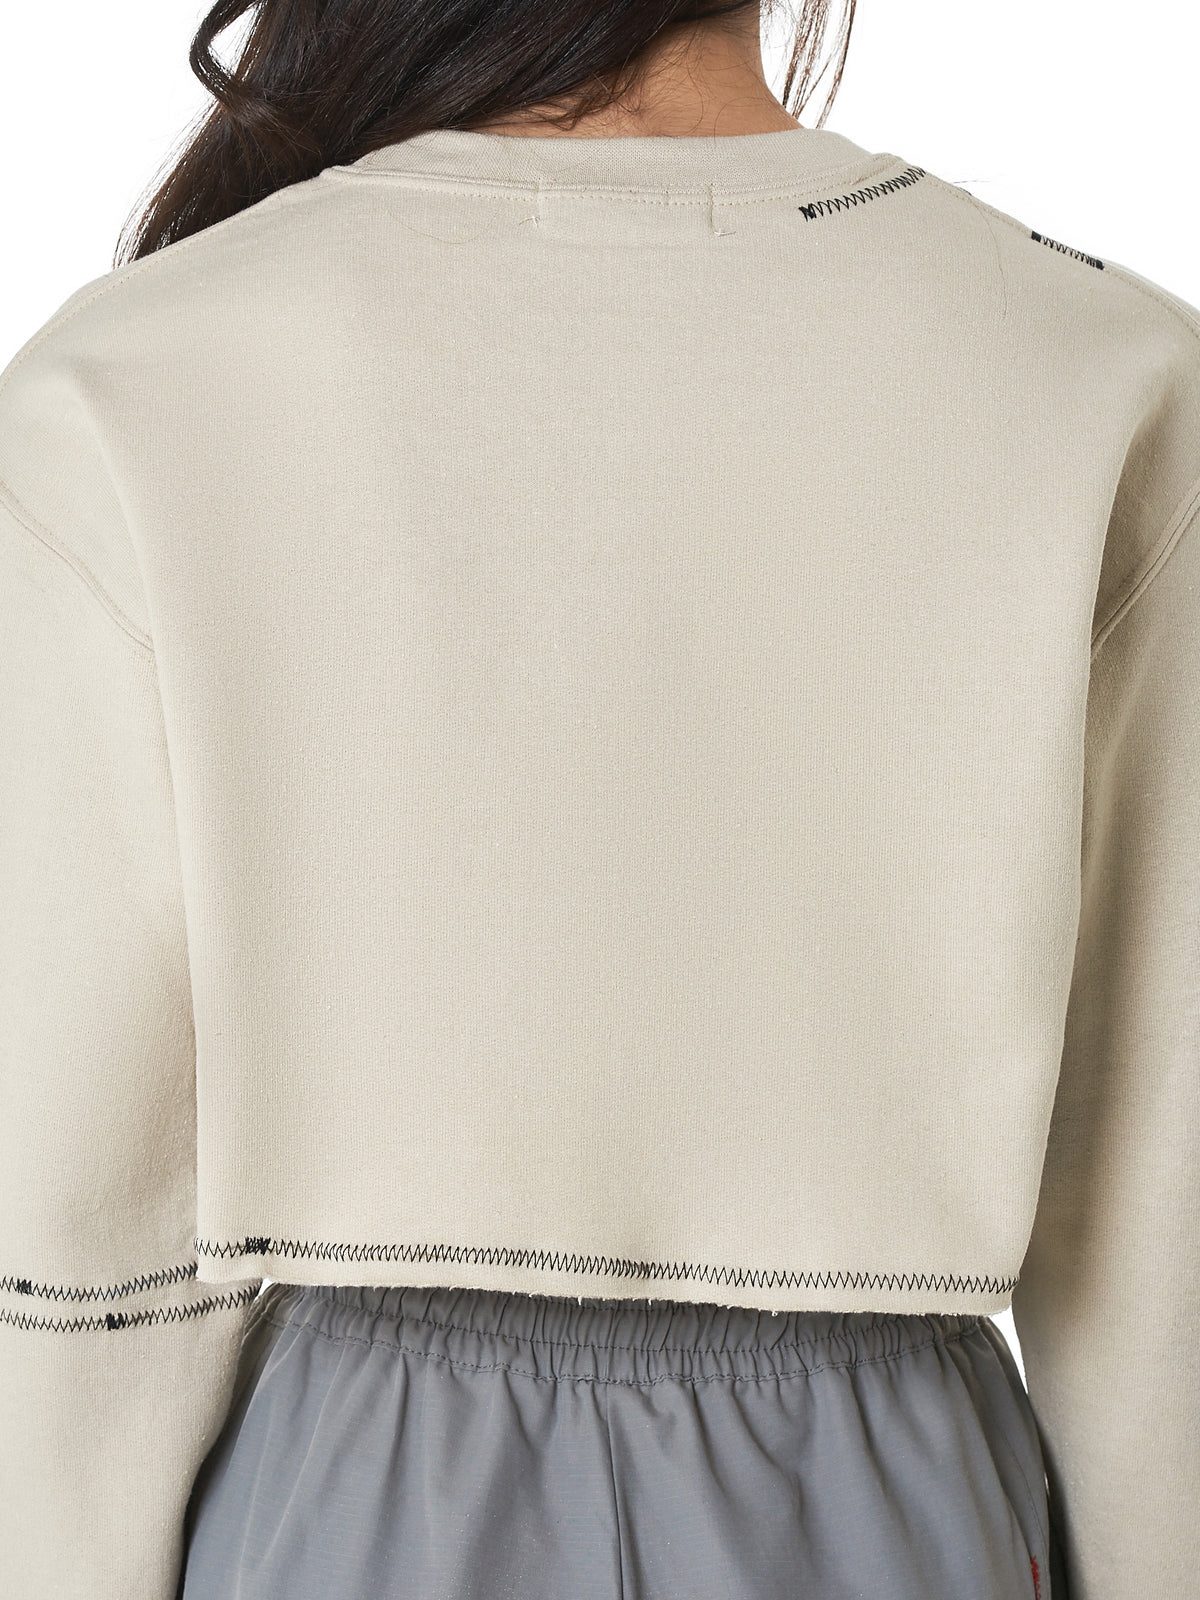 Claire Barrow Cropped Sweater - Hlorenzo Detail 2